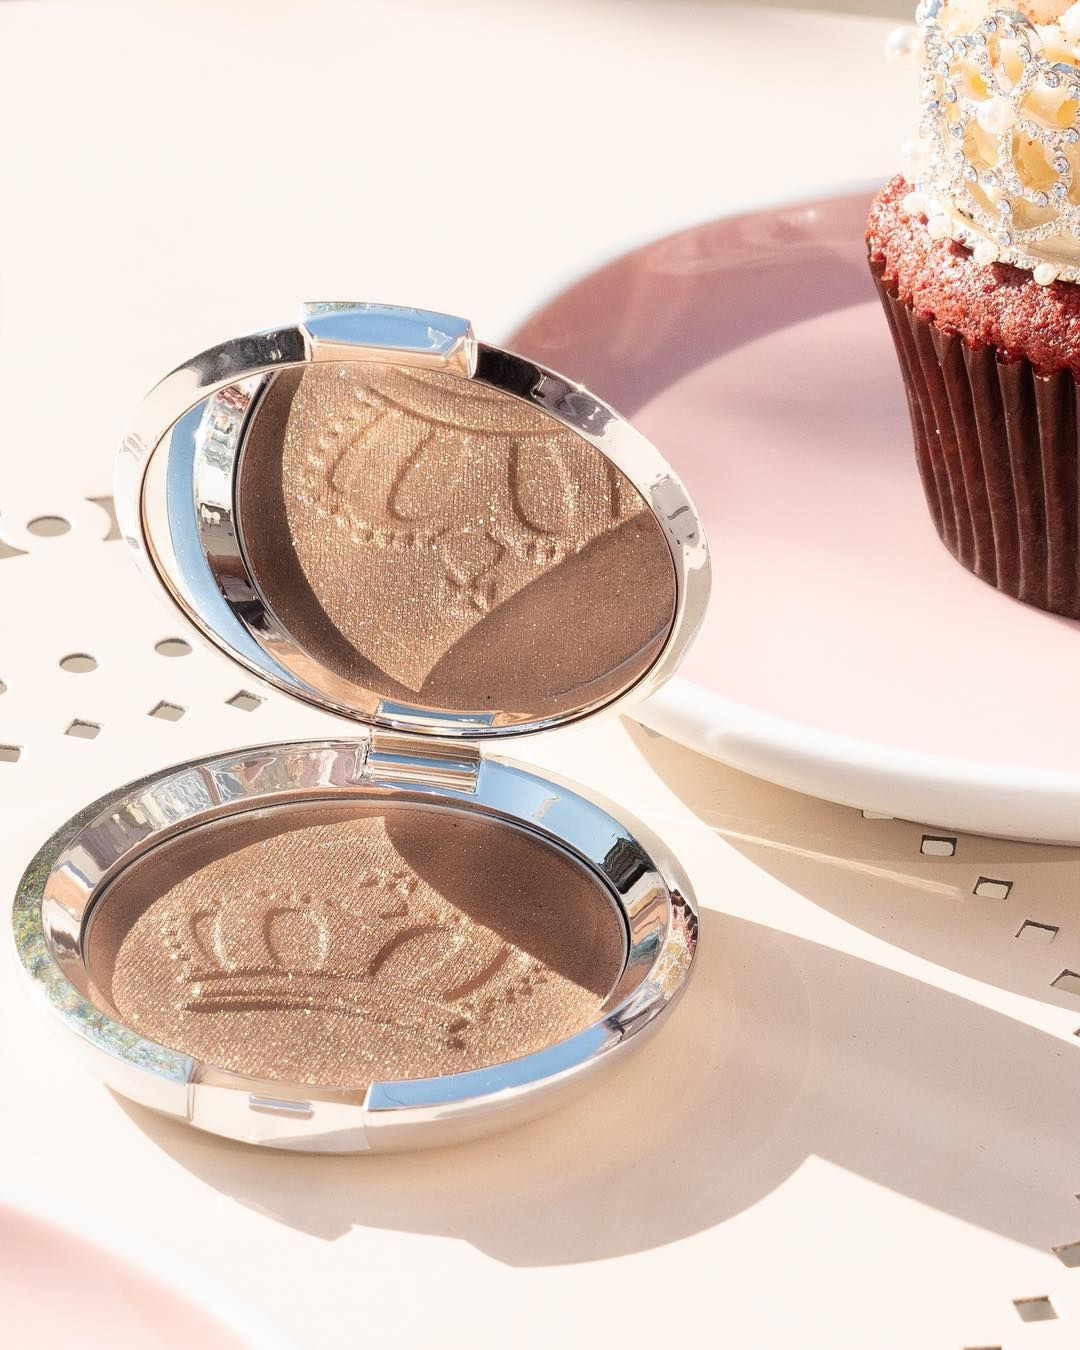 Shimmering Skin Perfector Pressed Highlighter Royal Glow Becca Cosmetics Becca Shimmering Skin Perfector Becca Highlighter